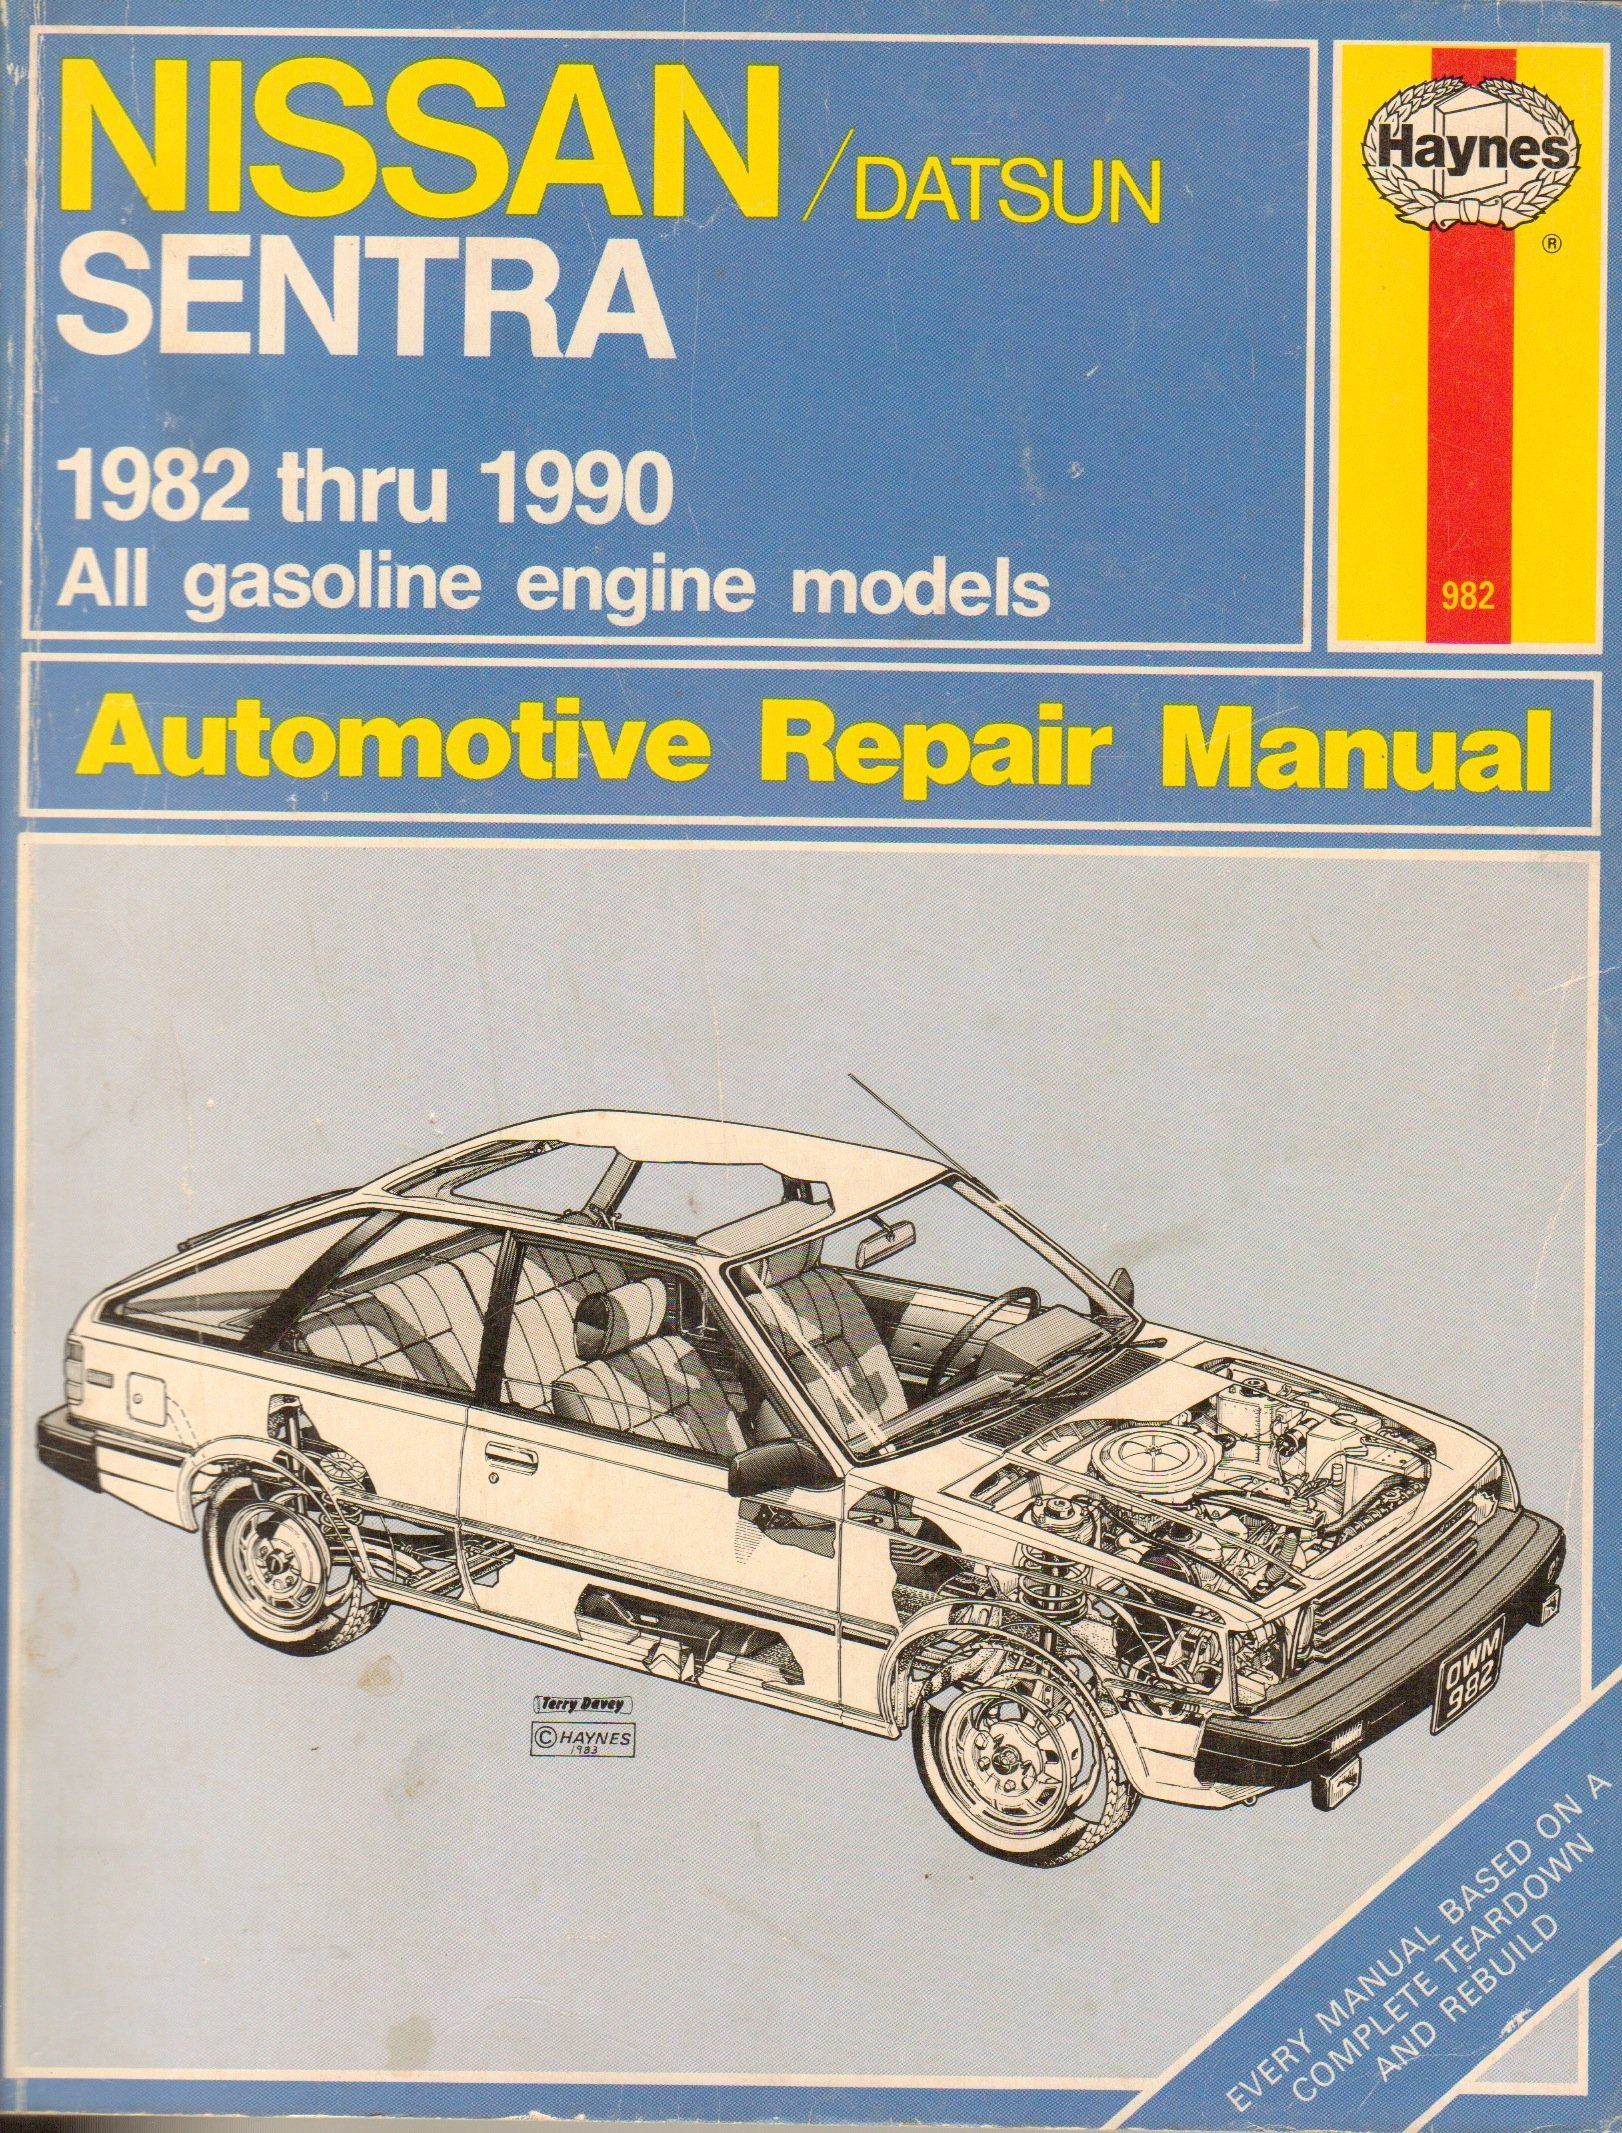 nissan datsun sentra 1982 1990 all gasoline engine models automotive rh amazon com manual de reparacion nissan sentra 1990 manual de reparacion nissan sentra 1990